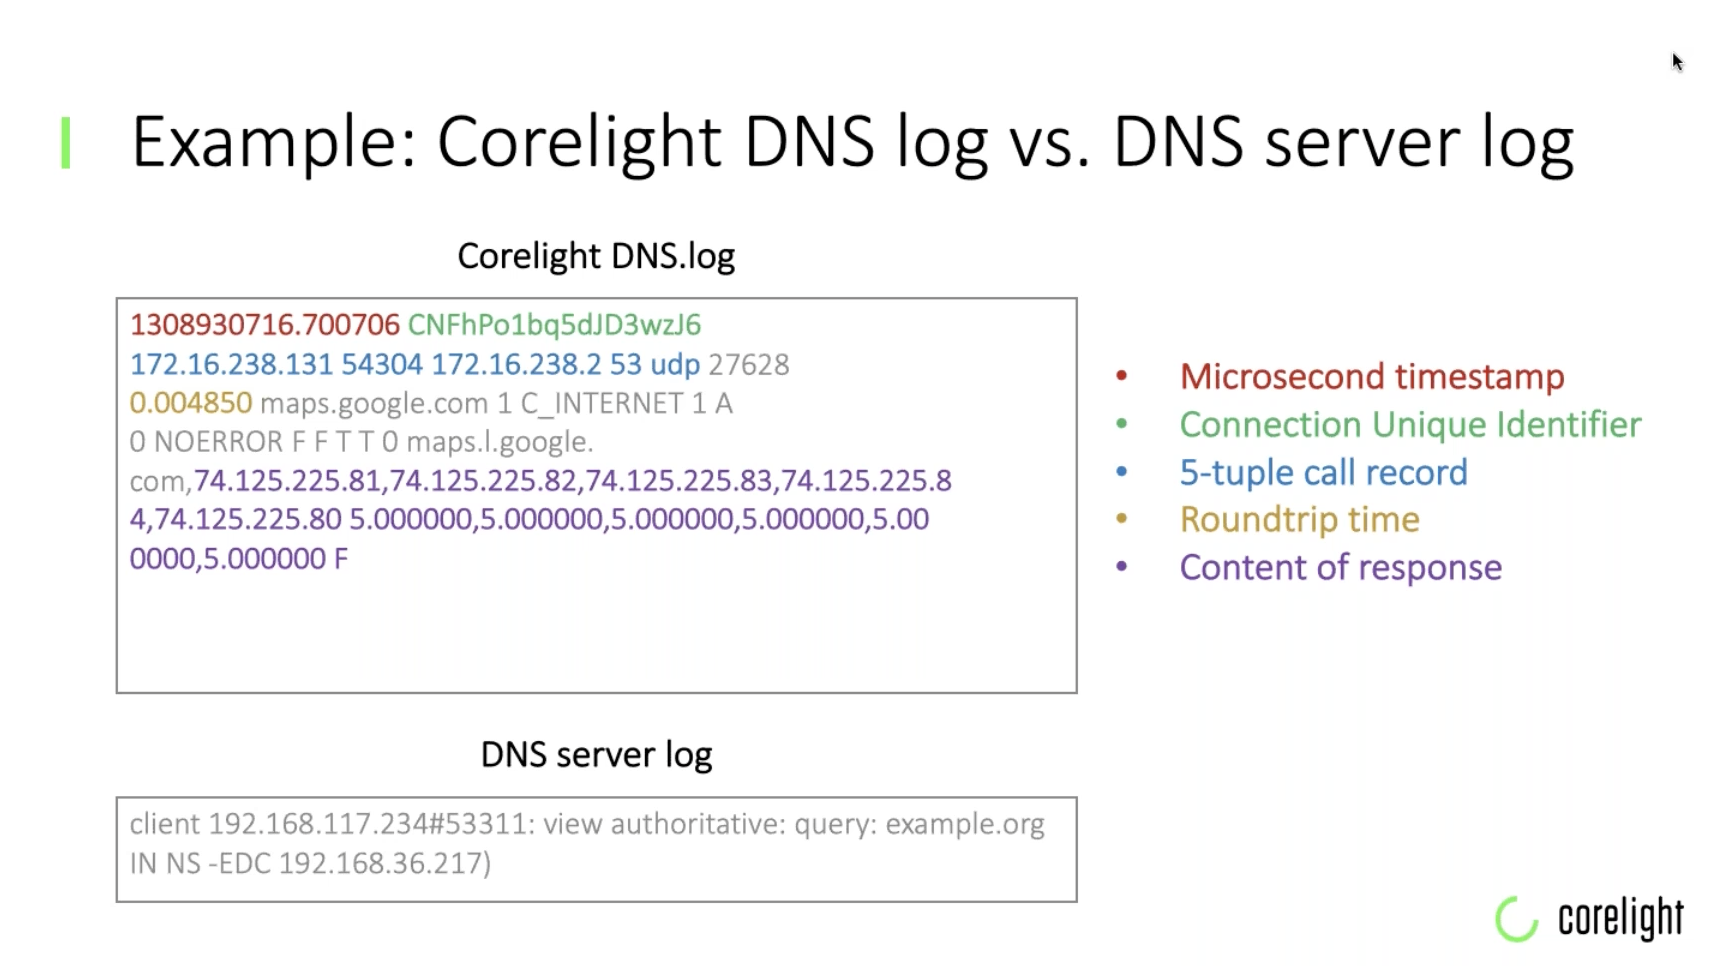 Corelight webinar: How to capture and analyze all of your network traffic